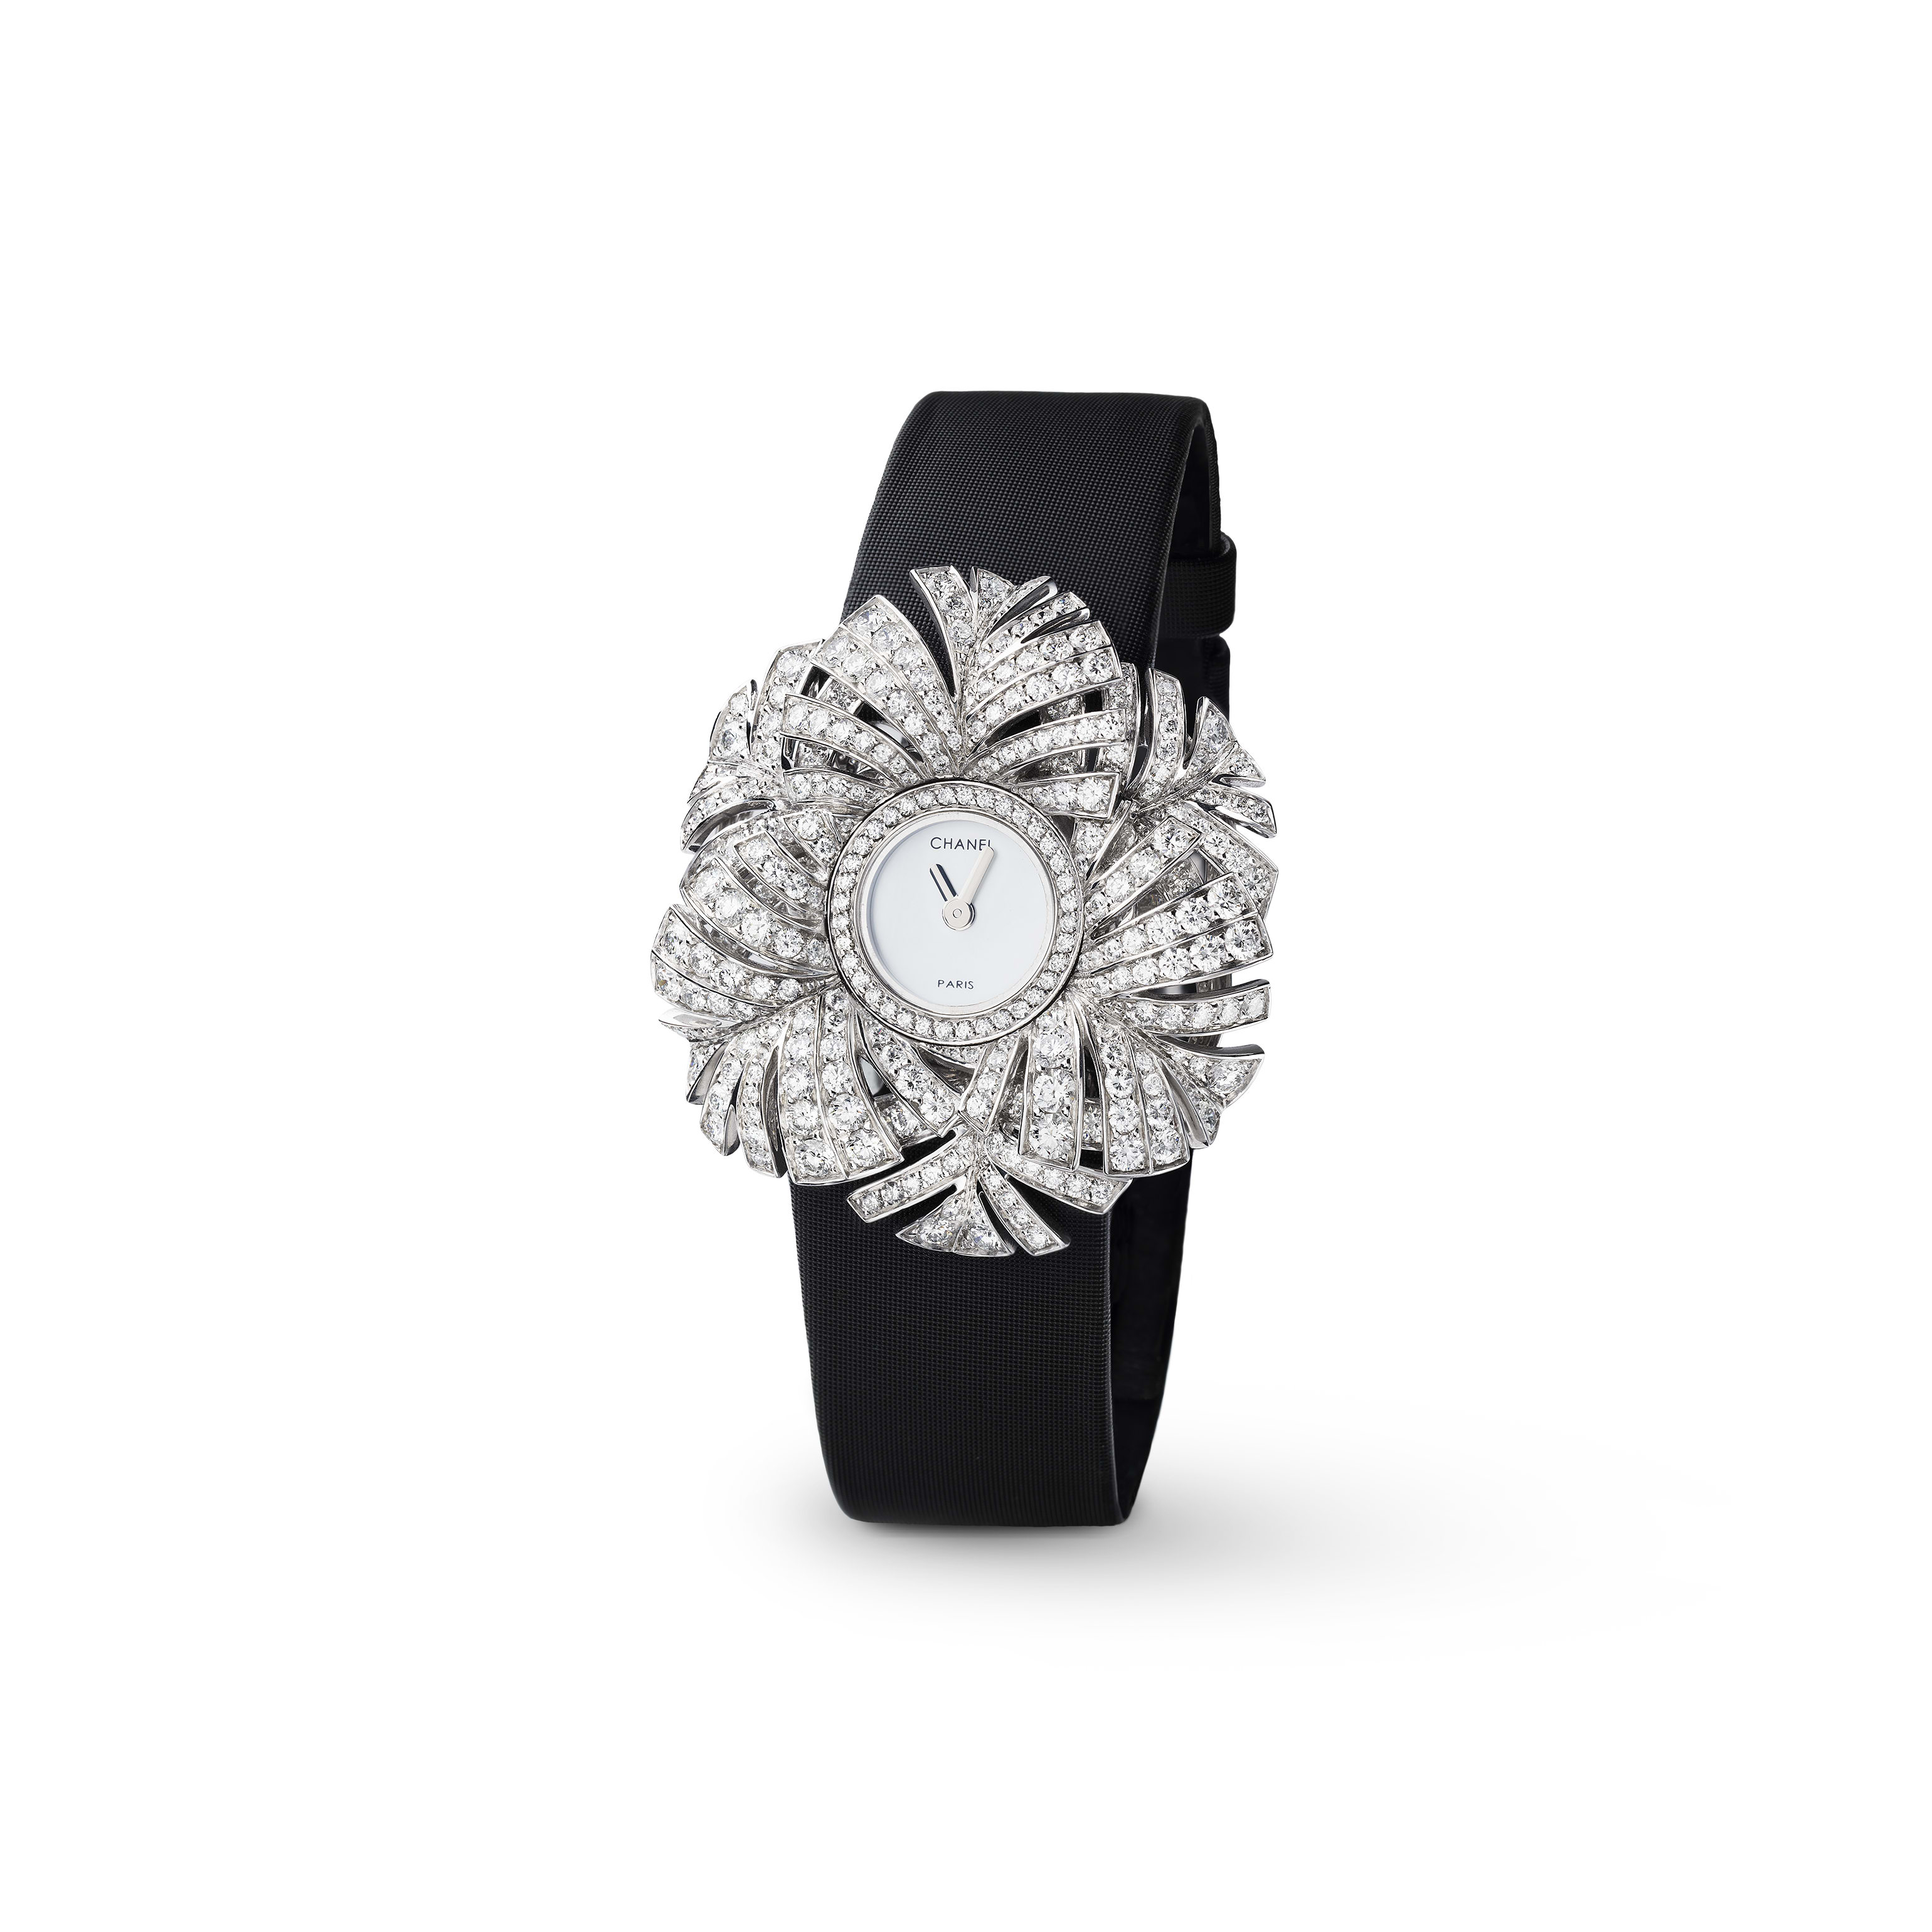 Plume de CHANEL Jewellery Watch - Plume Panache motif in 18K white gold and diamonds - CHANEL - Default view - see standard sized version